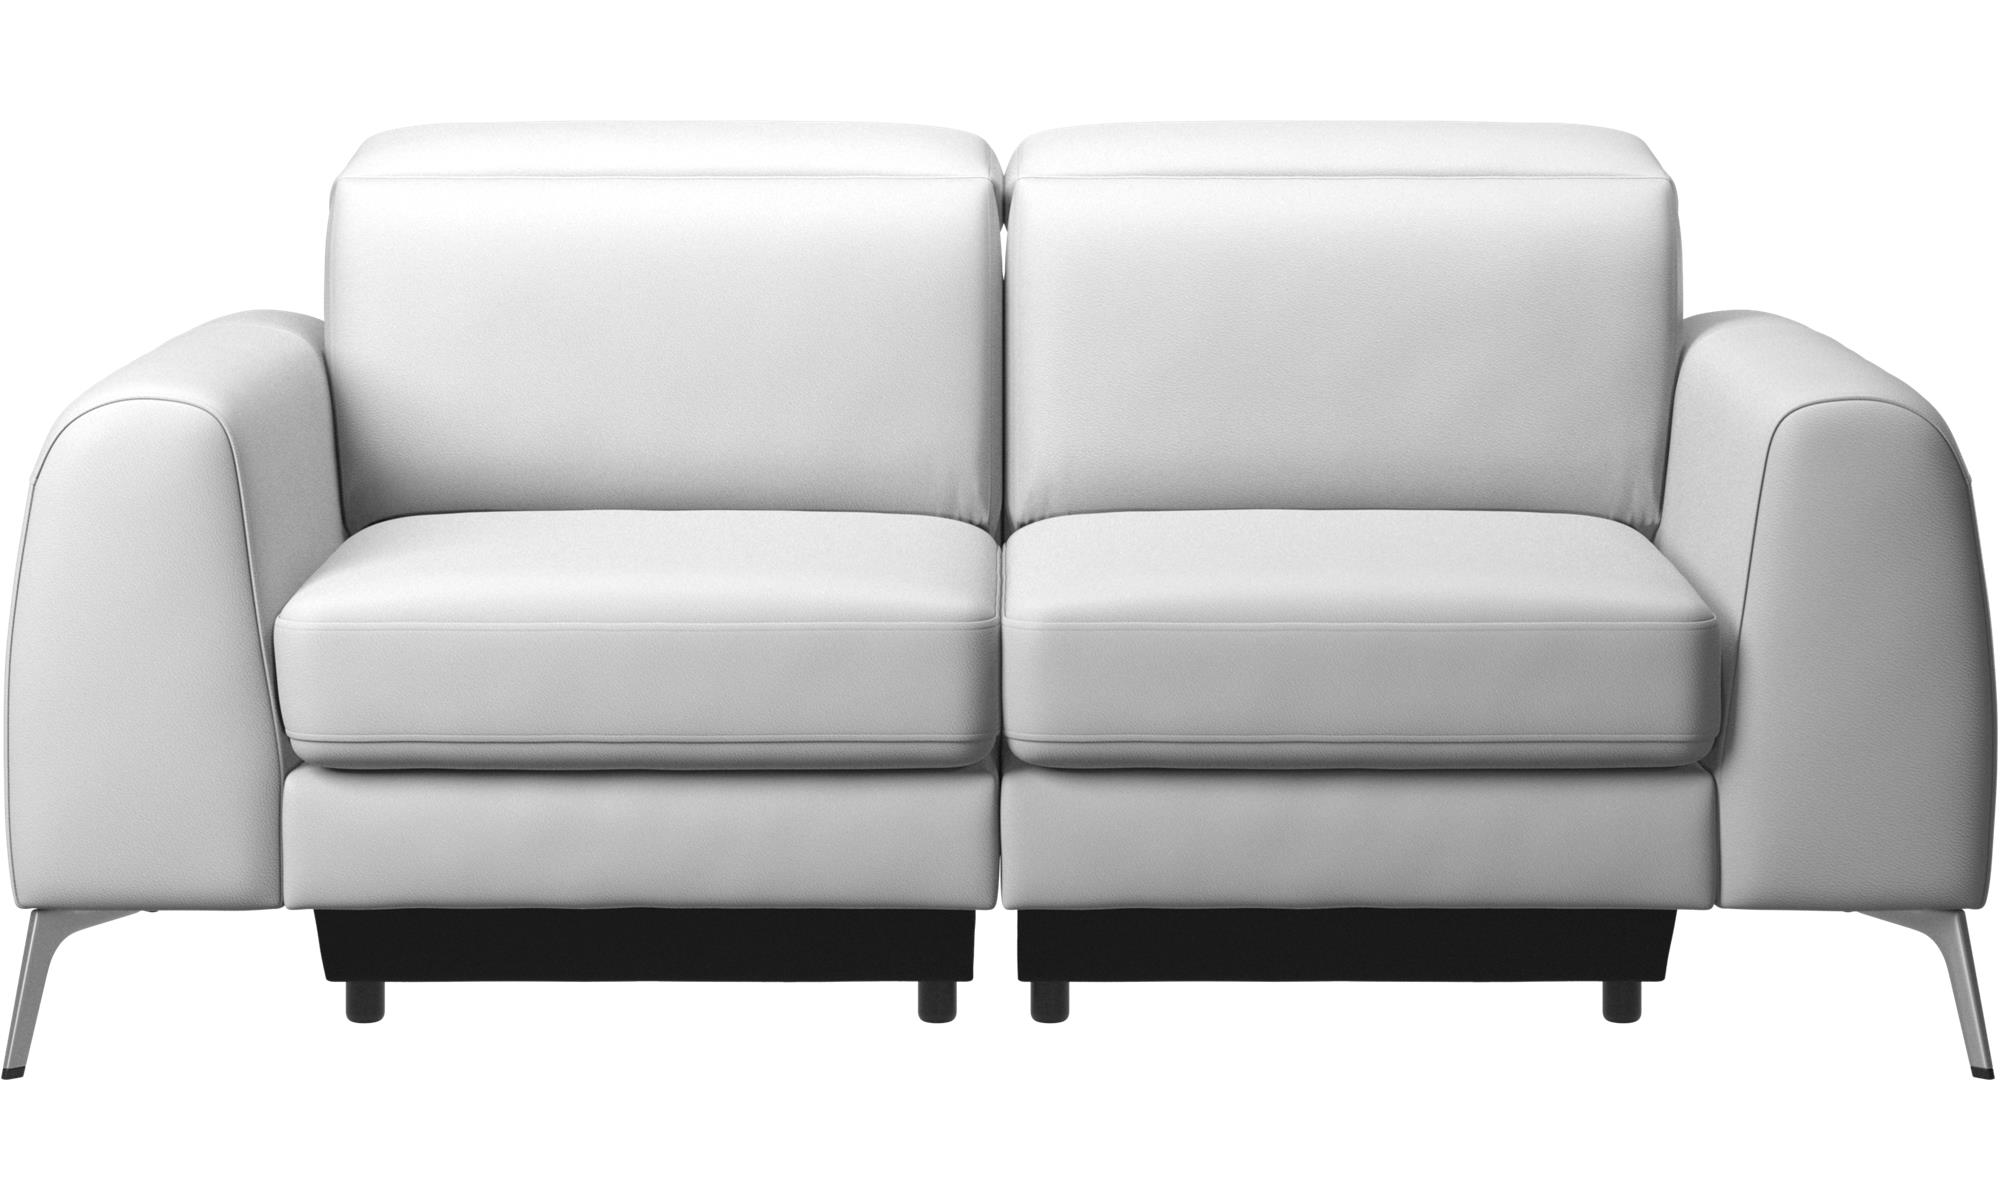 2 seater sofas madison sofa with adjustable headrest boconcept - Sofas de dos colores ...